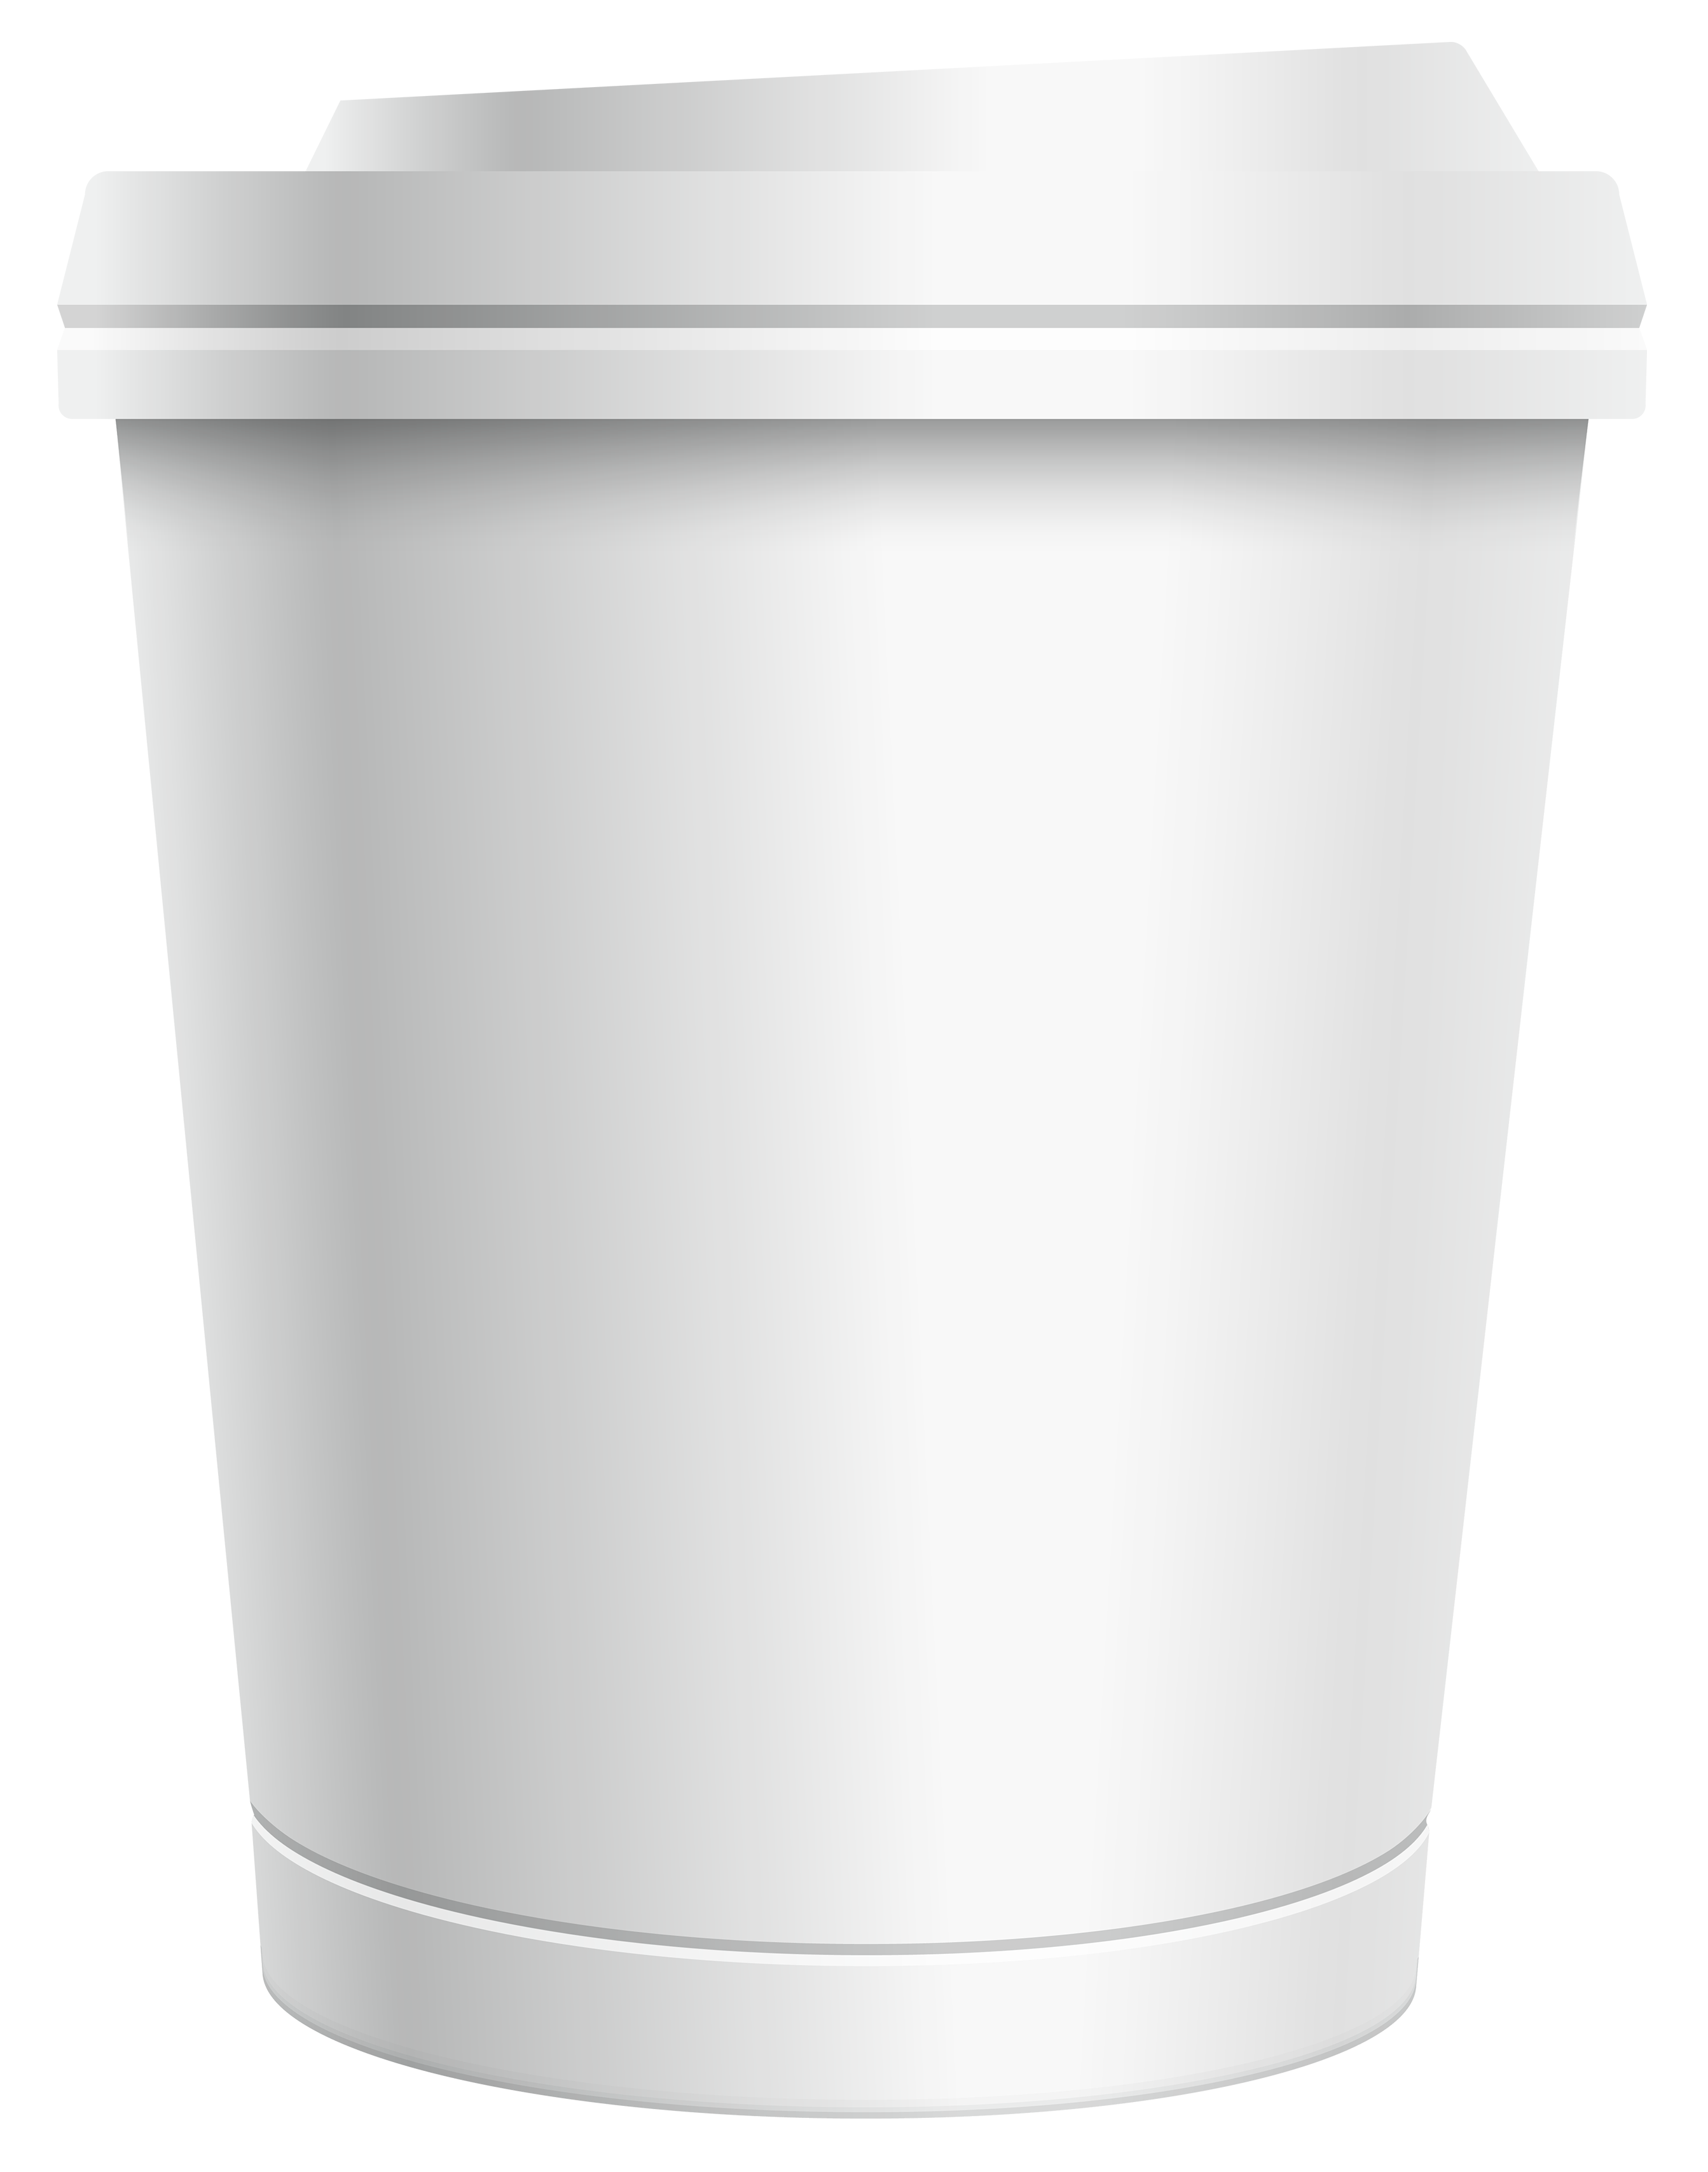 White coffee cup png. Plastic clipart image gallery